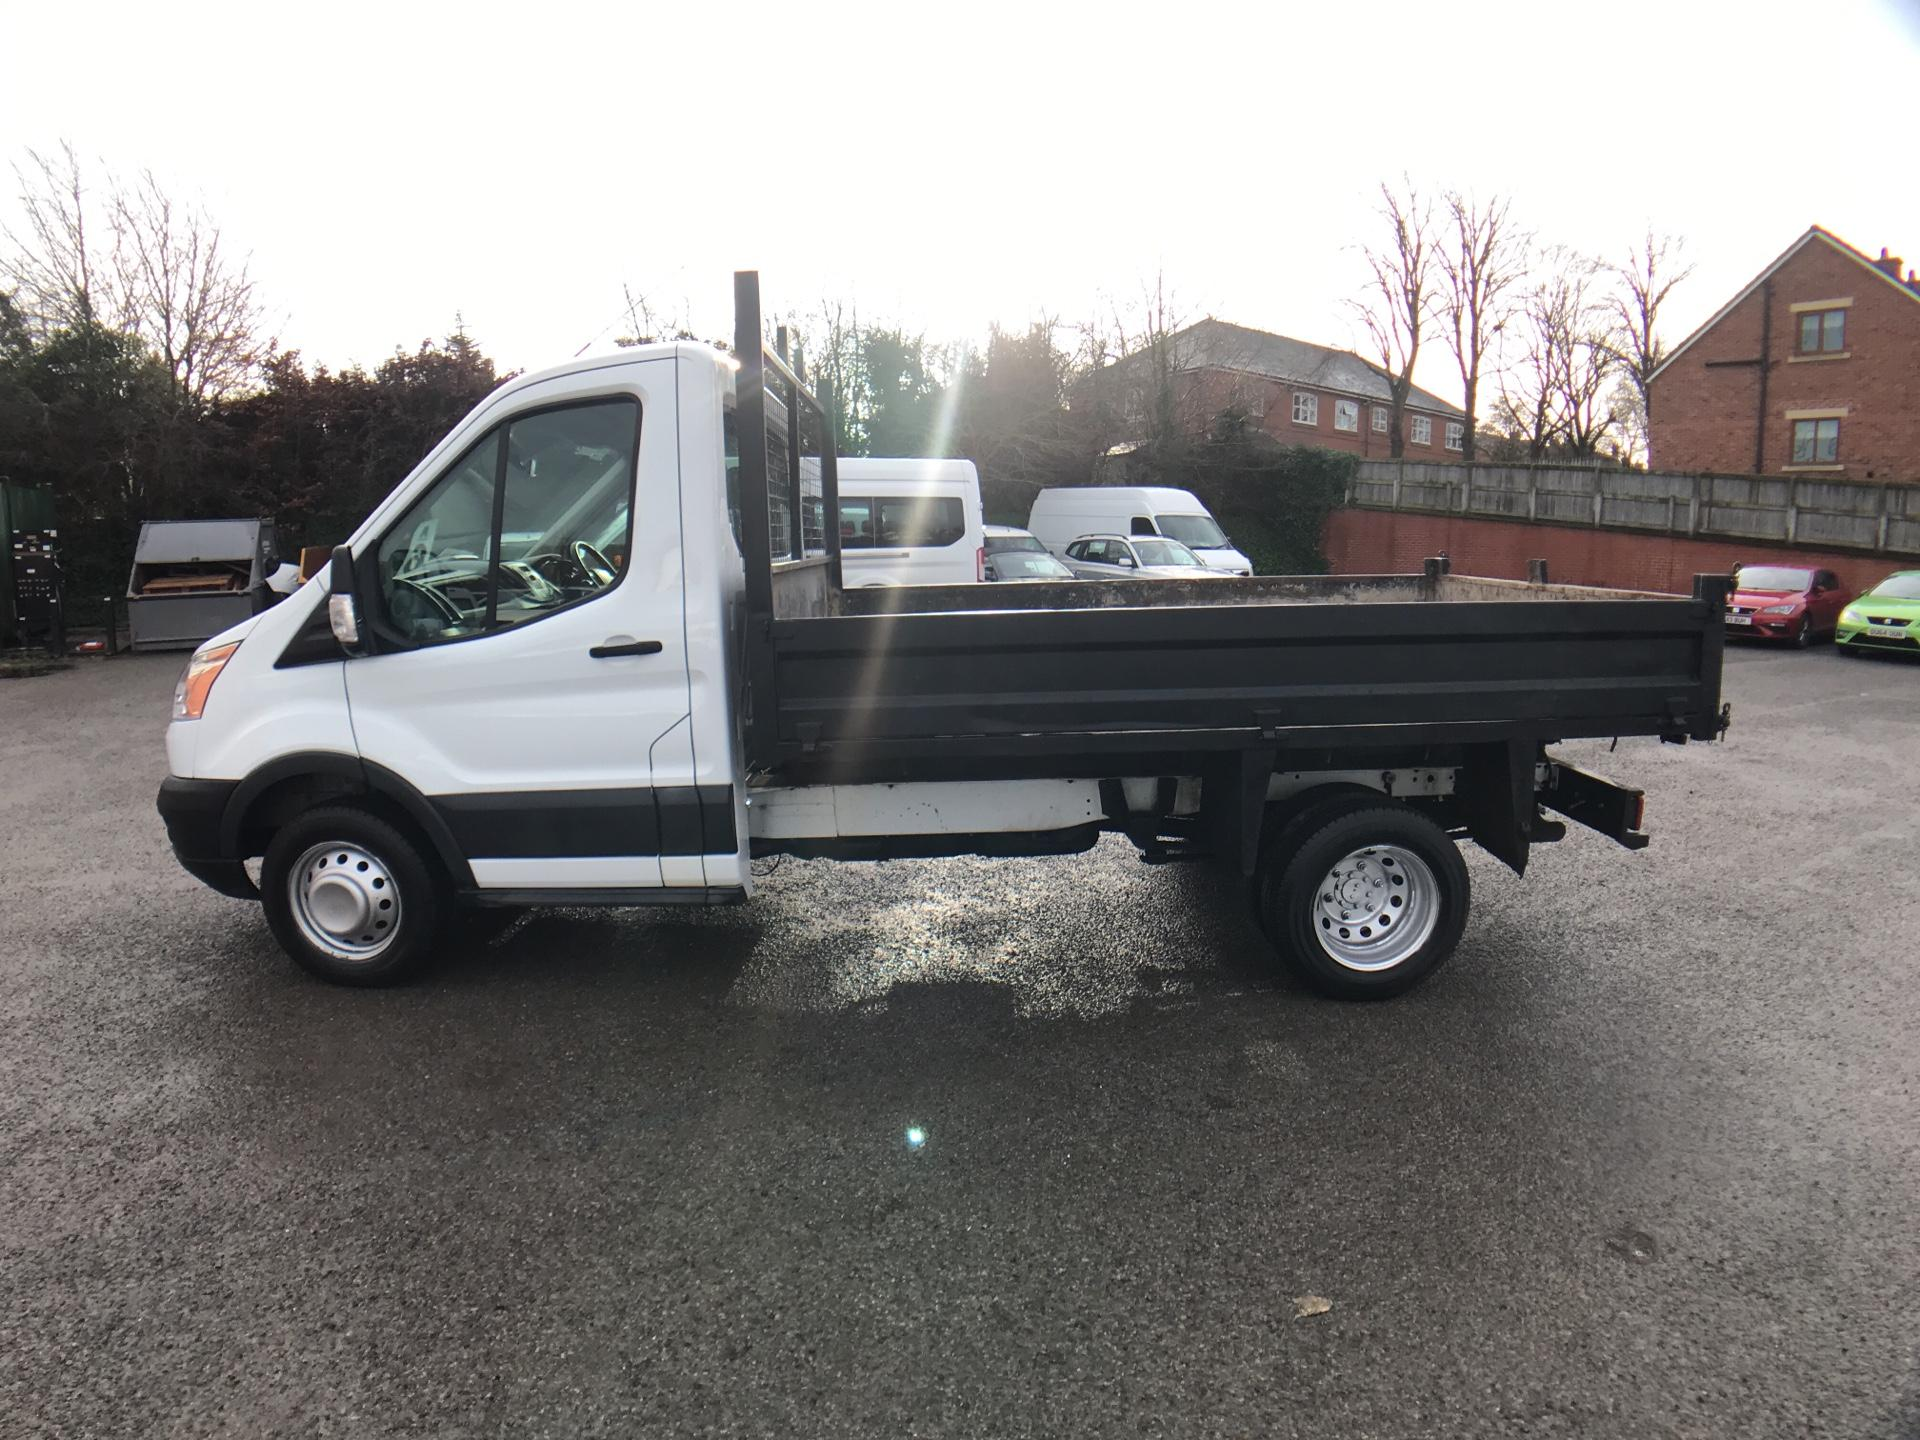 2016 Ford Transit 350 L2 SINGLE CAB TIPPER 125PS EURO 5 *VALUE RANGE VEHICLE CONDITION REFLECTED IN PRICE* (WR65VYK) Image 6